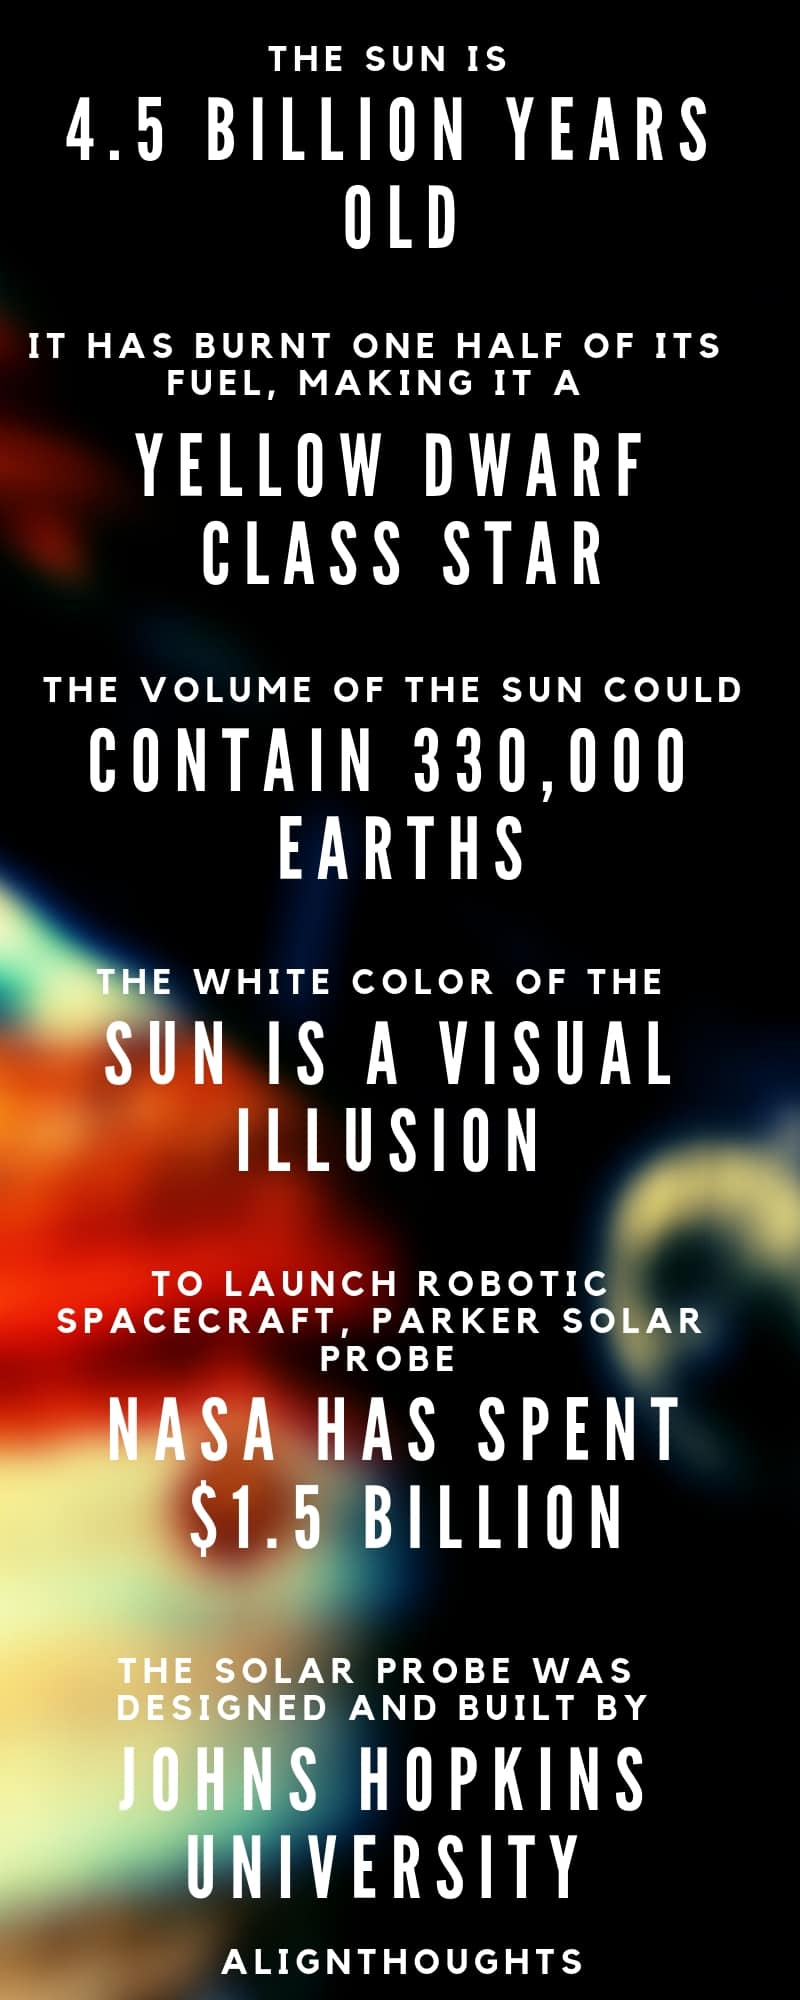 the-parker-solar-probe-nasas-robotic-spacecraft-alignthoughts